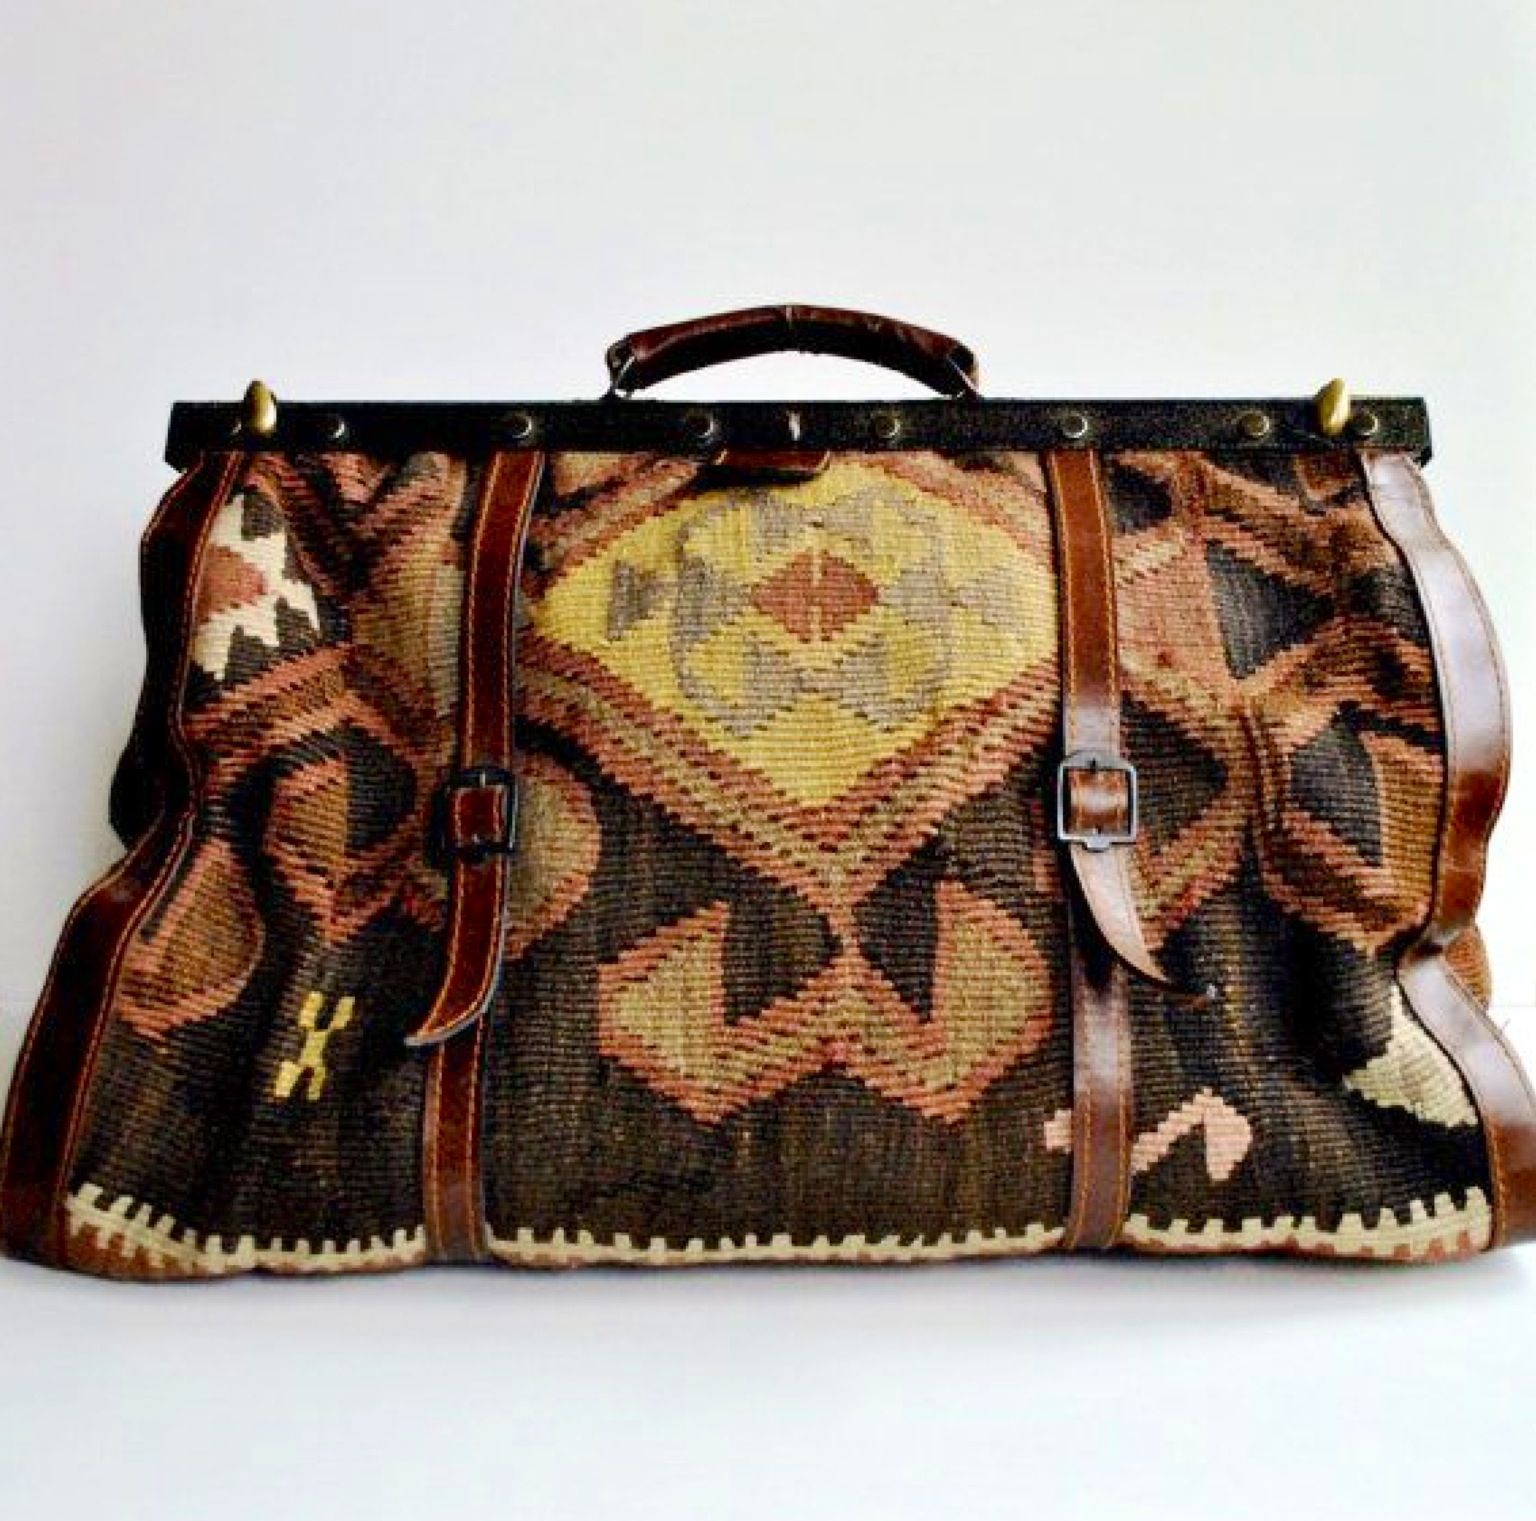 Living A Beautiful Life Kilim Carpet Bag Large Overnight Luggage Turkish Vintage